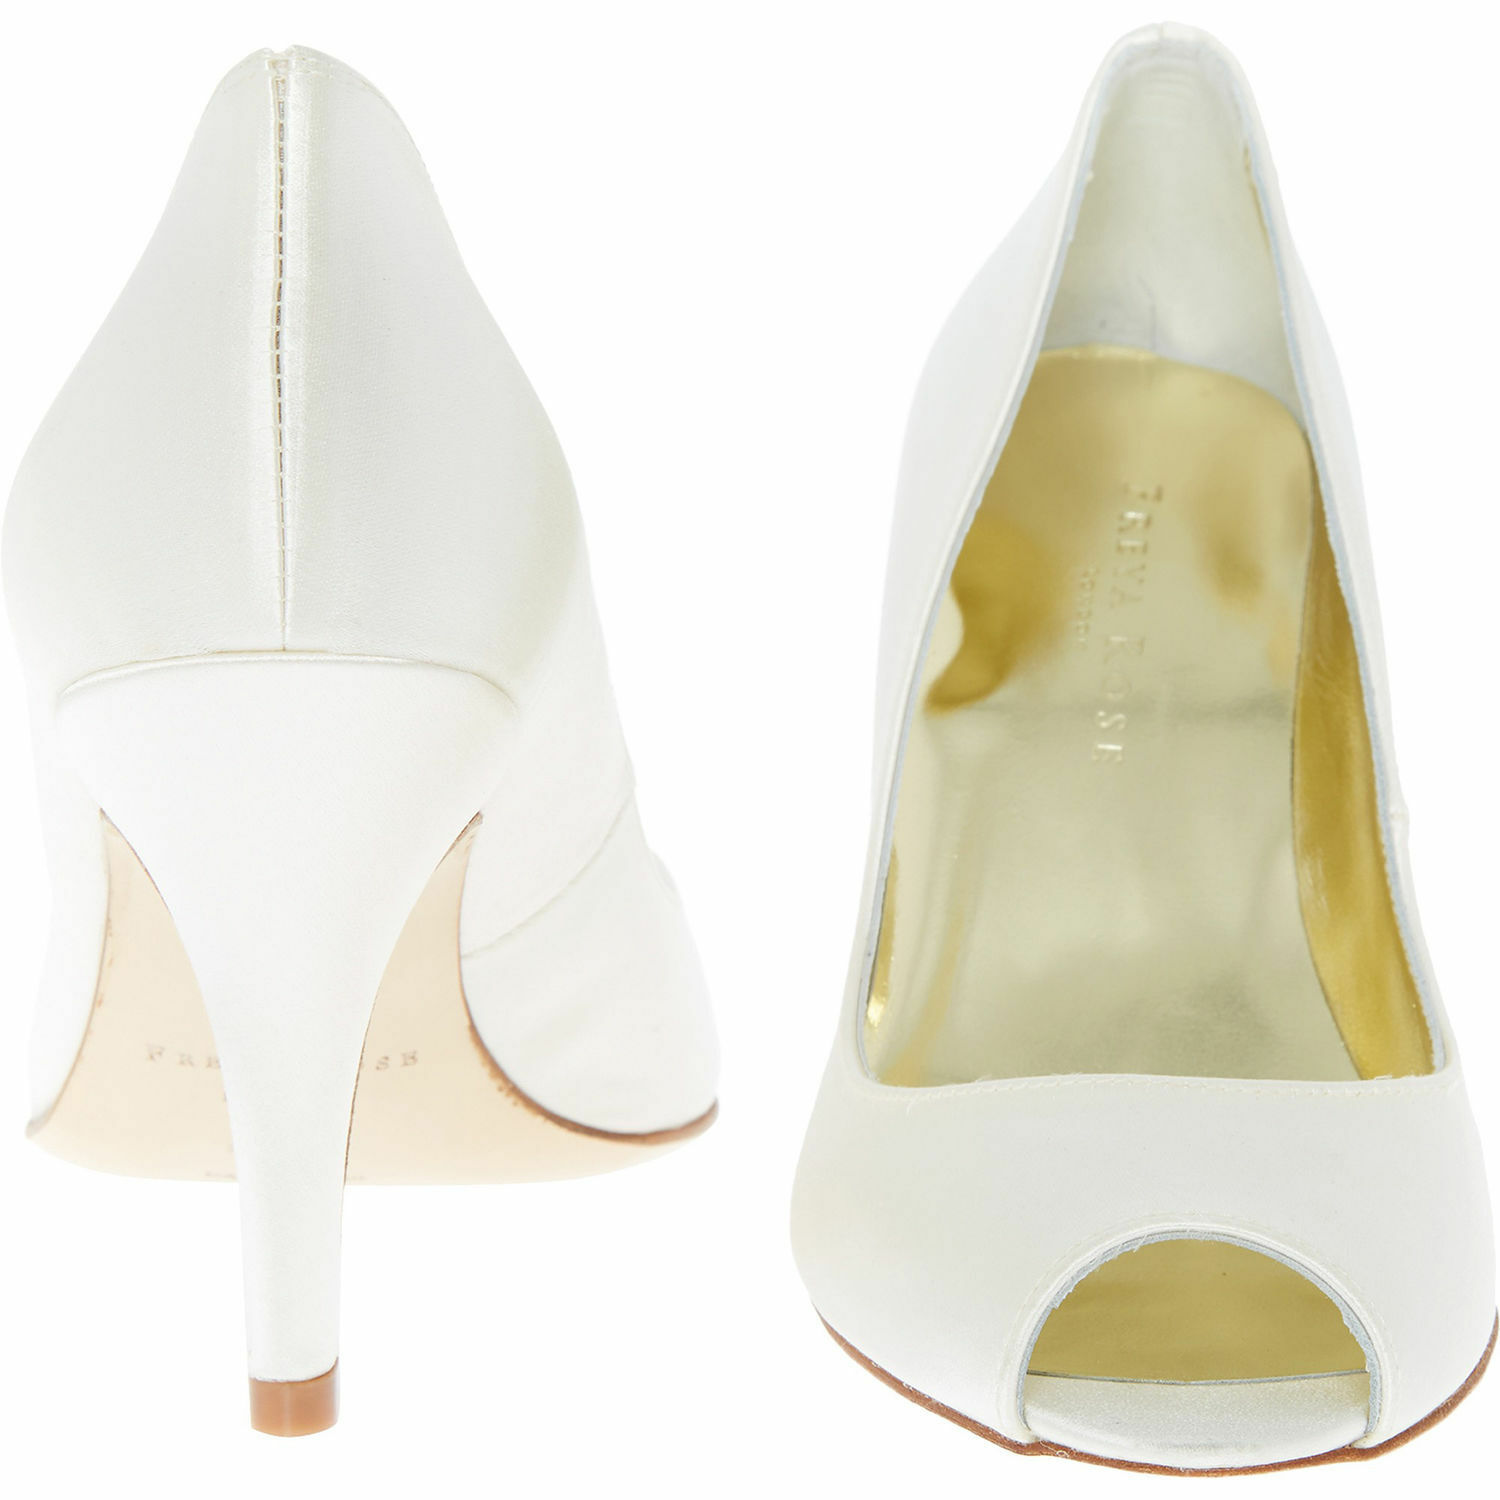 New FREYA ROSE Della Ivory Silk Weiß Weiß Weiß Satin Peep Toe Heels Evening Schuhes UK 2.5 175bda